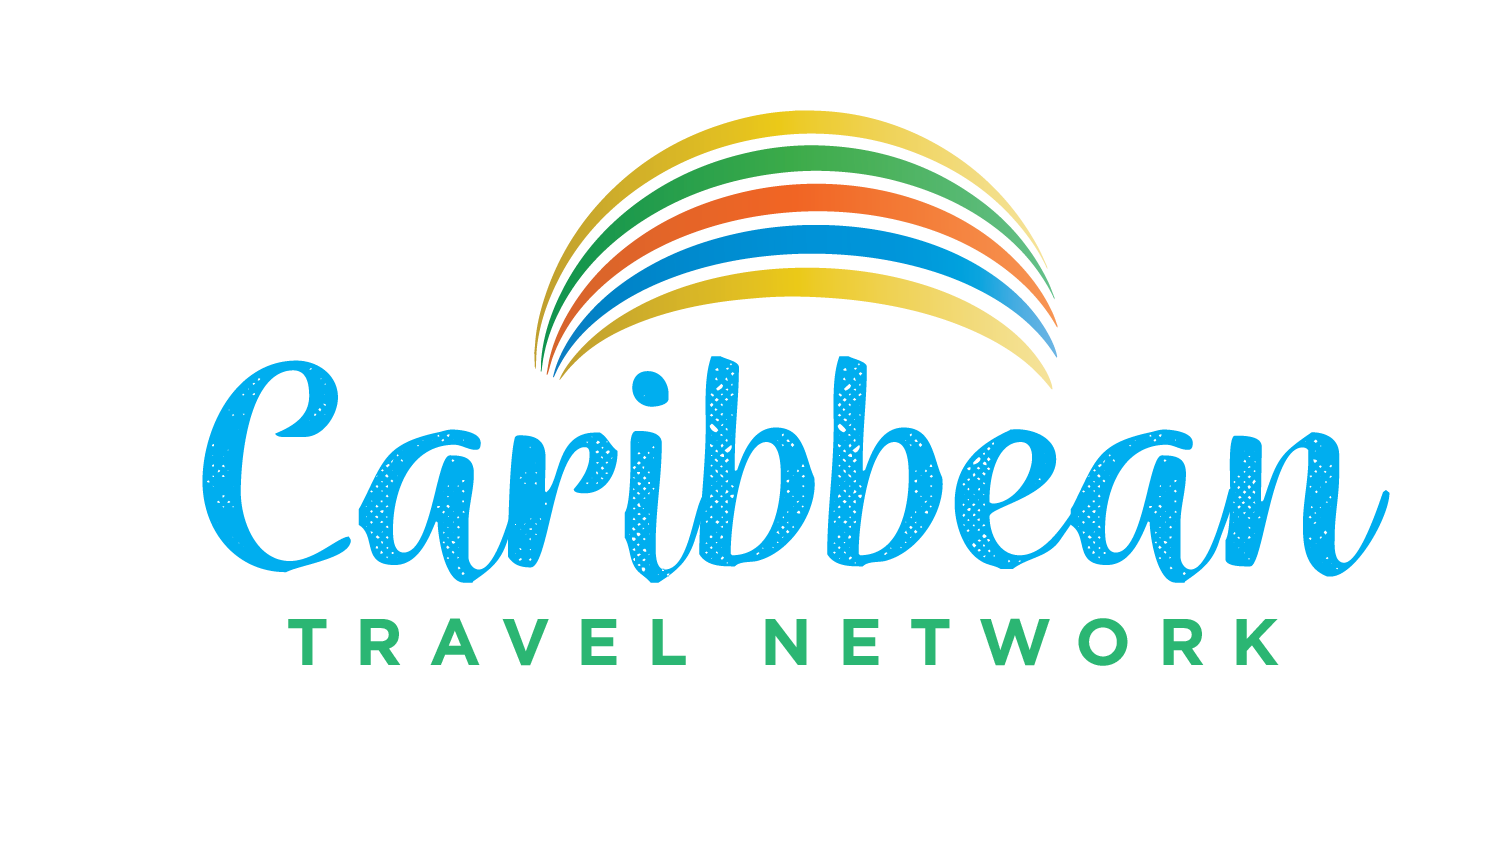 Caribbean Travel Network